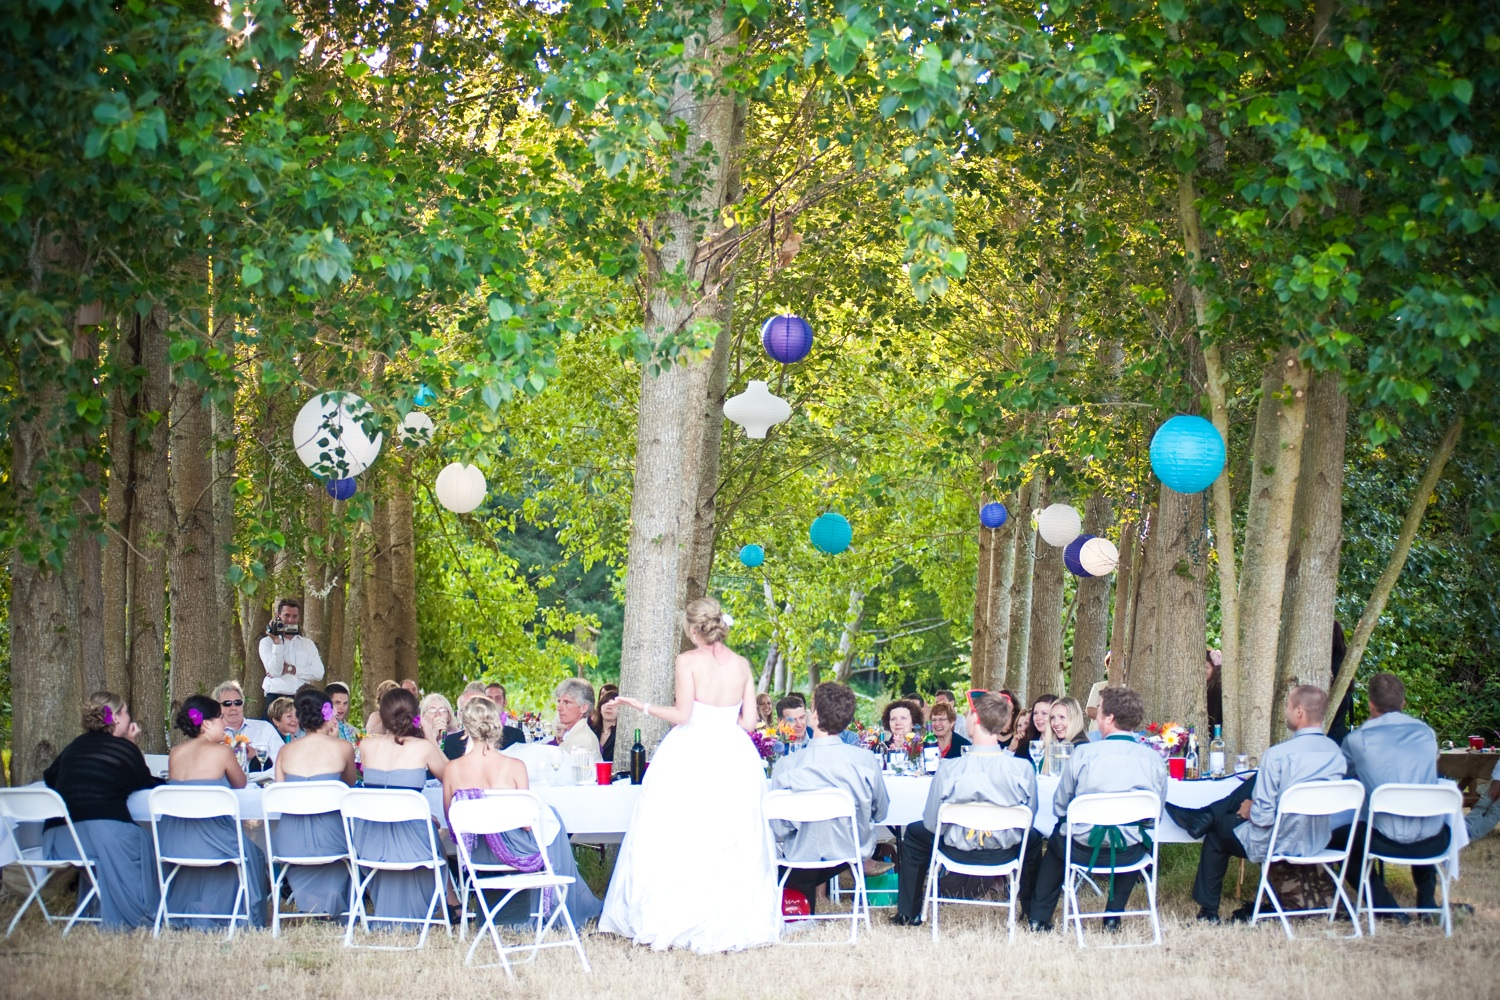 Wedding Planning Ideas: Outdoor Wedding Venues